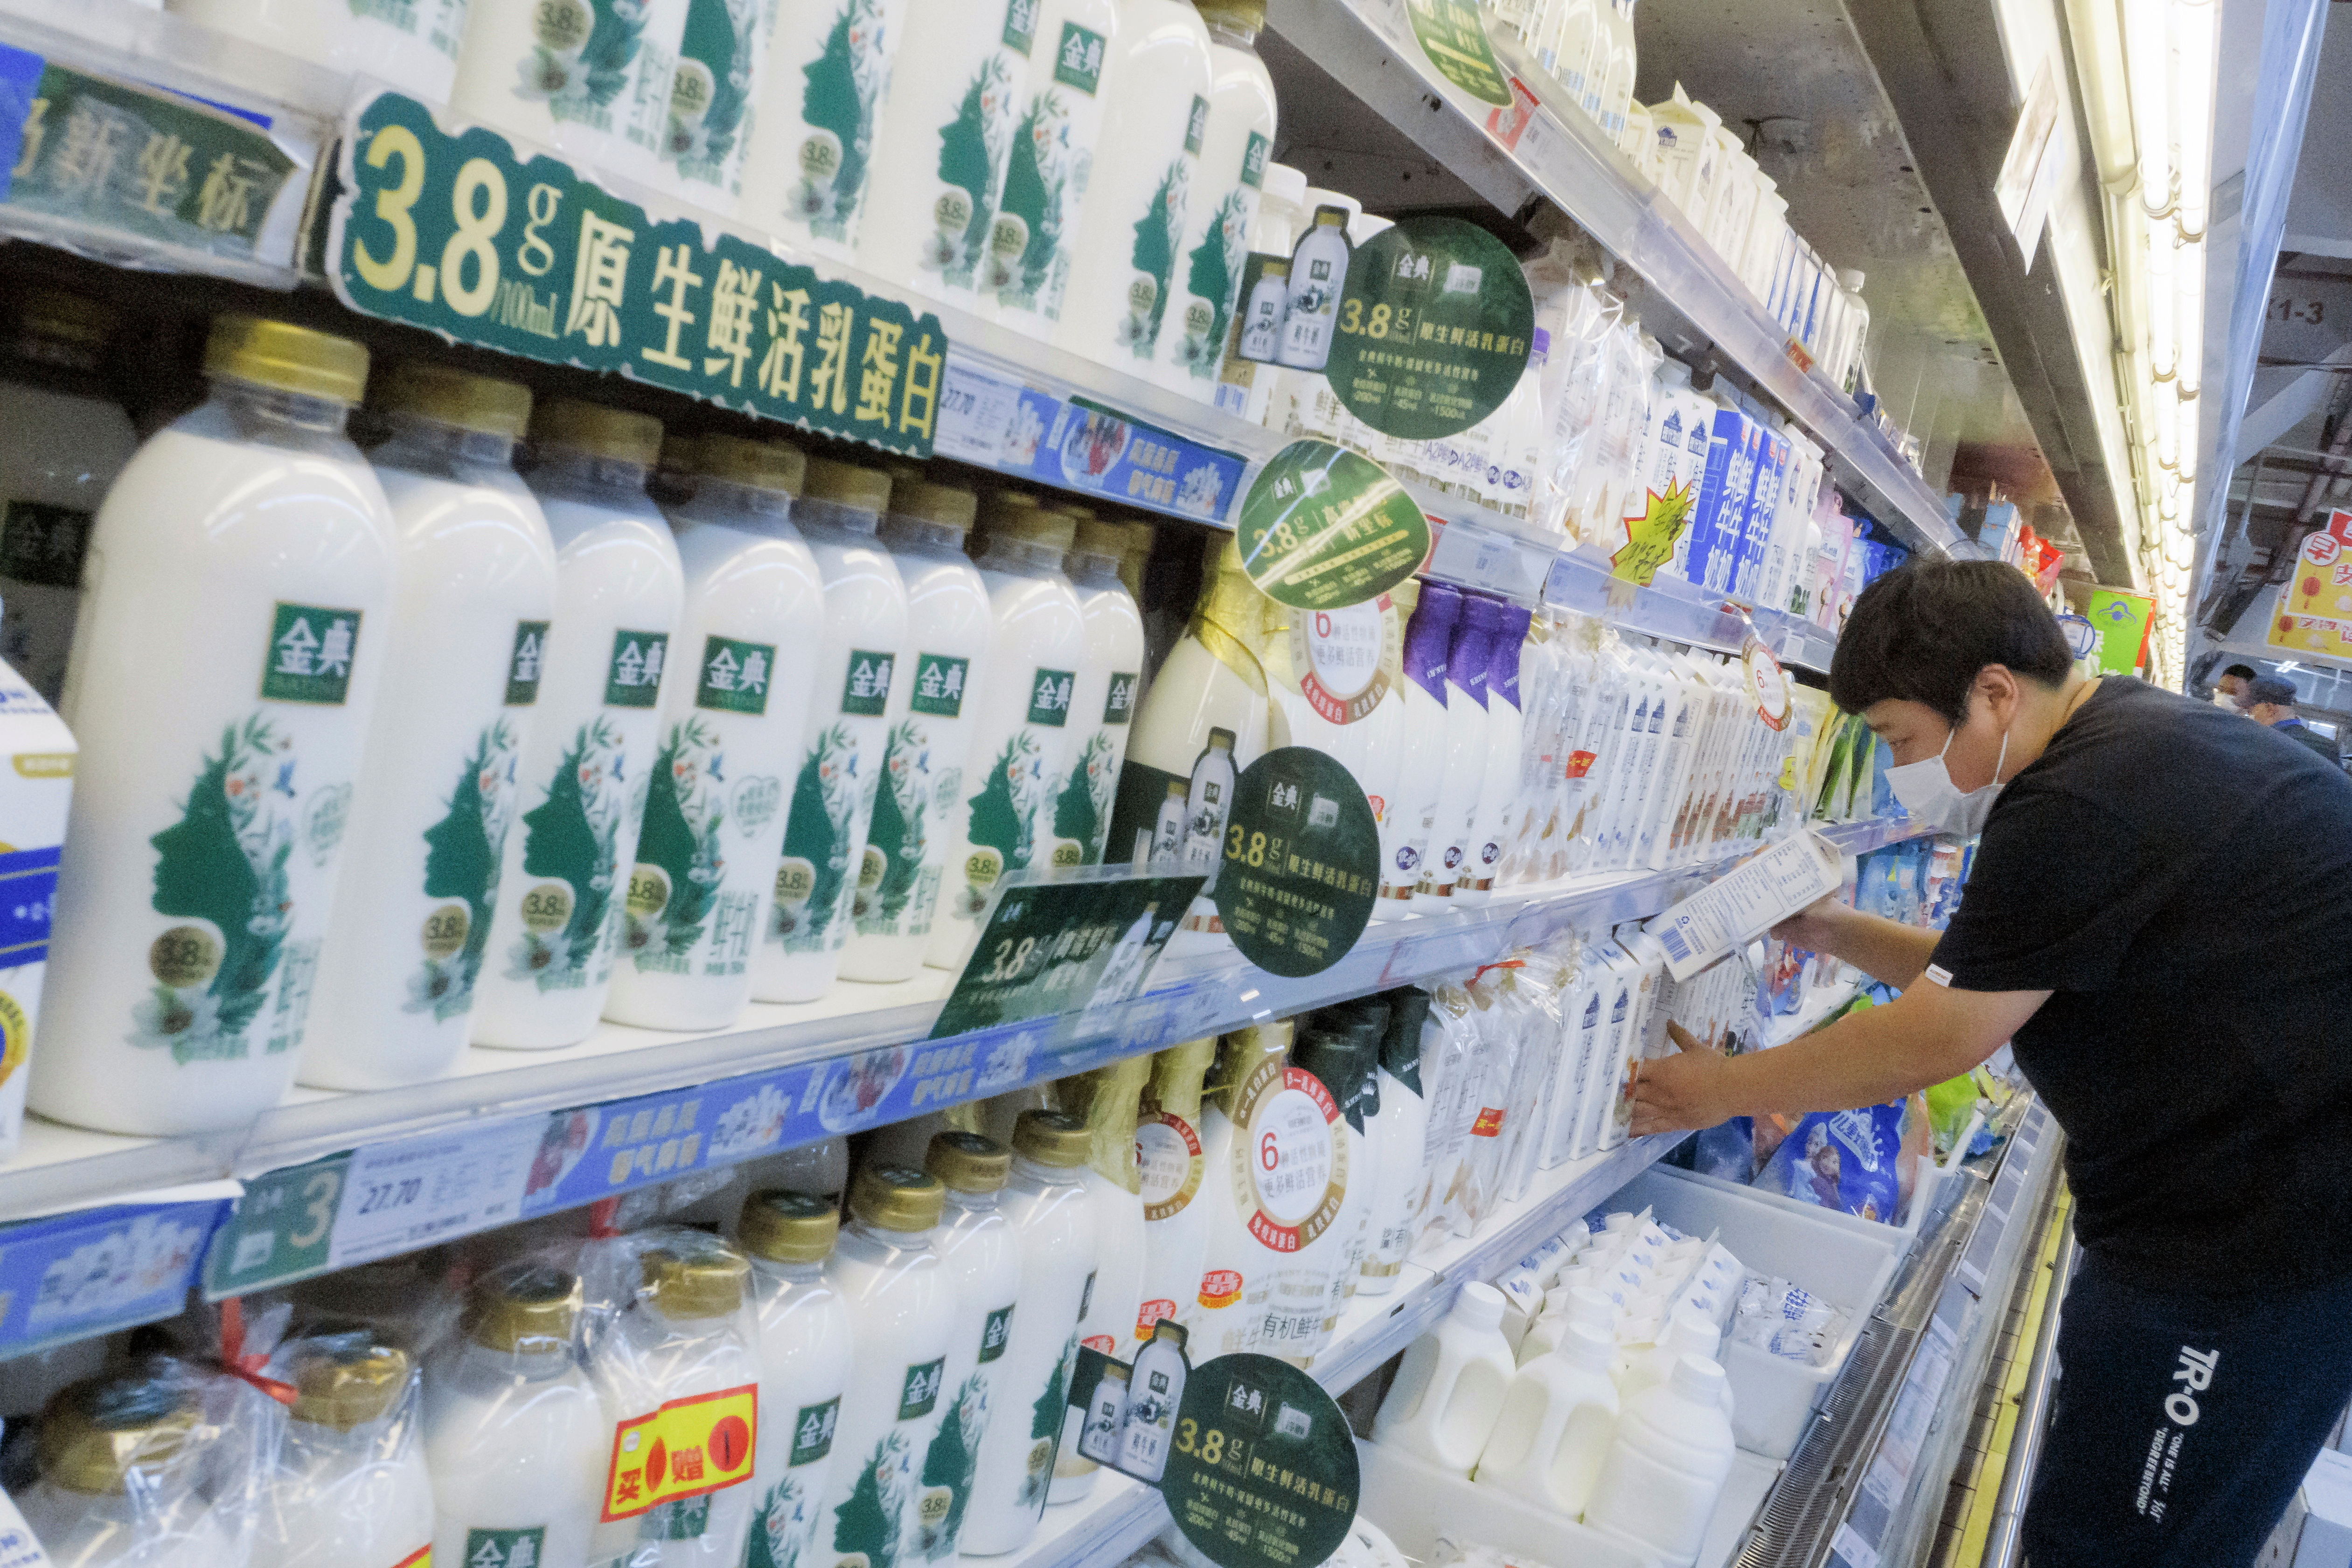 A staff member places cartons of milk on refrigerator shelves at a supermarket in Beijing, China, May 21, 2021. REUTERS/Thomas Peter